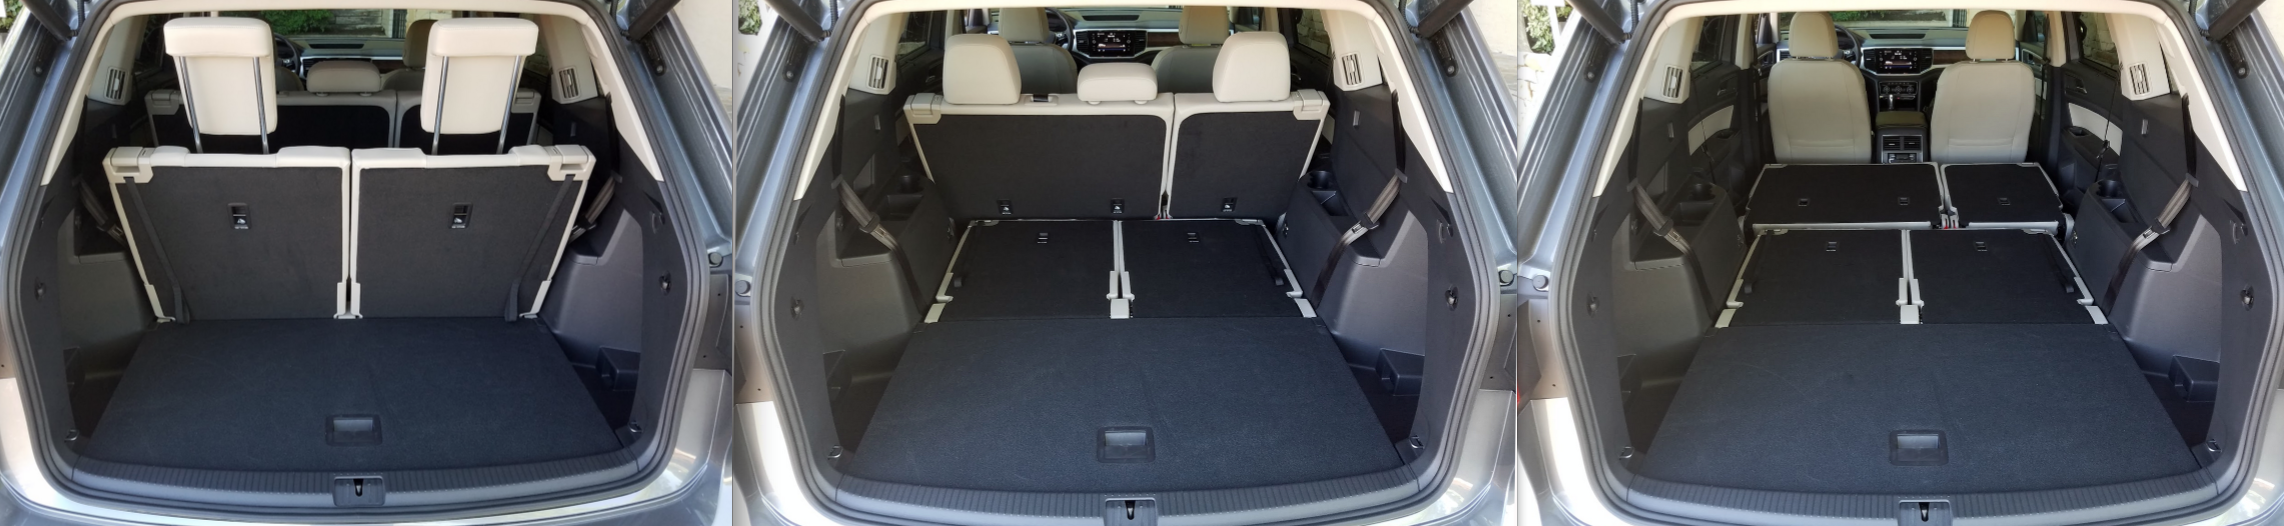 VW Atlas cargo area